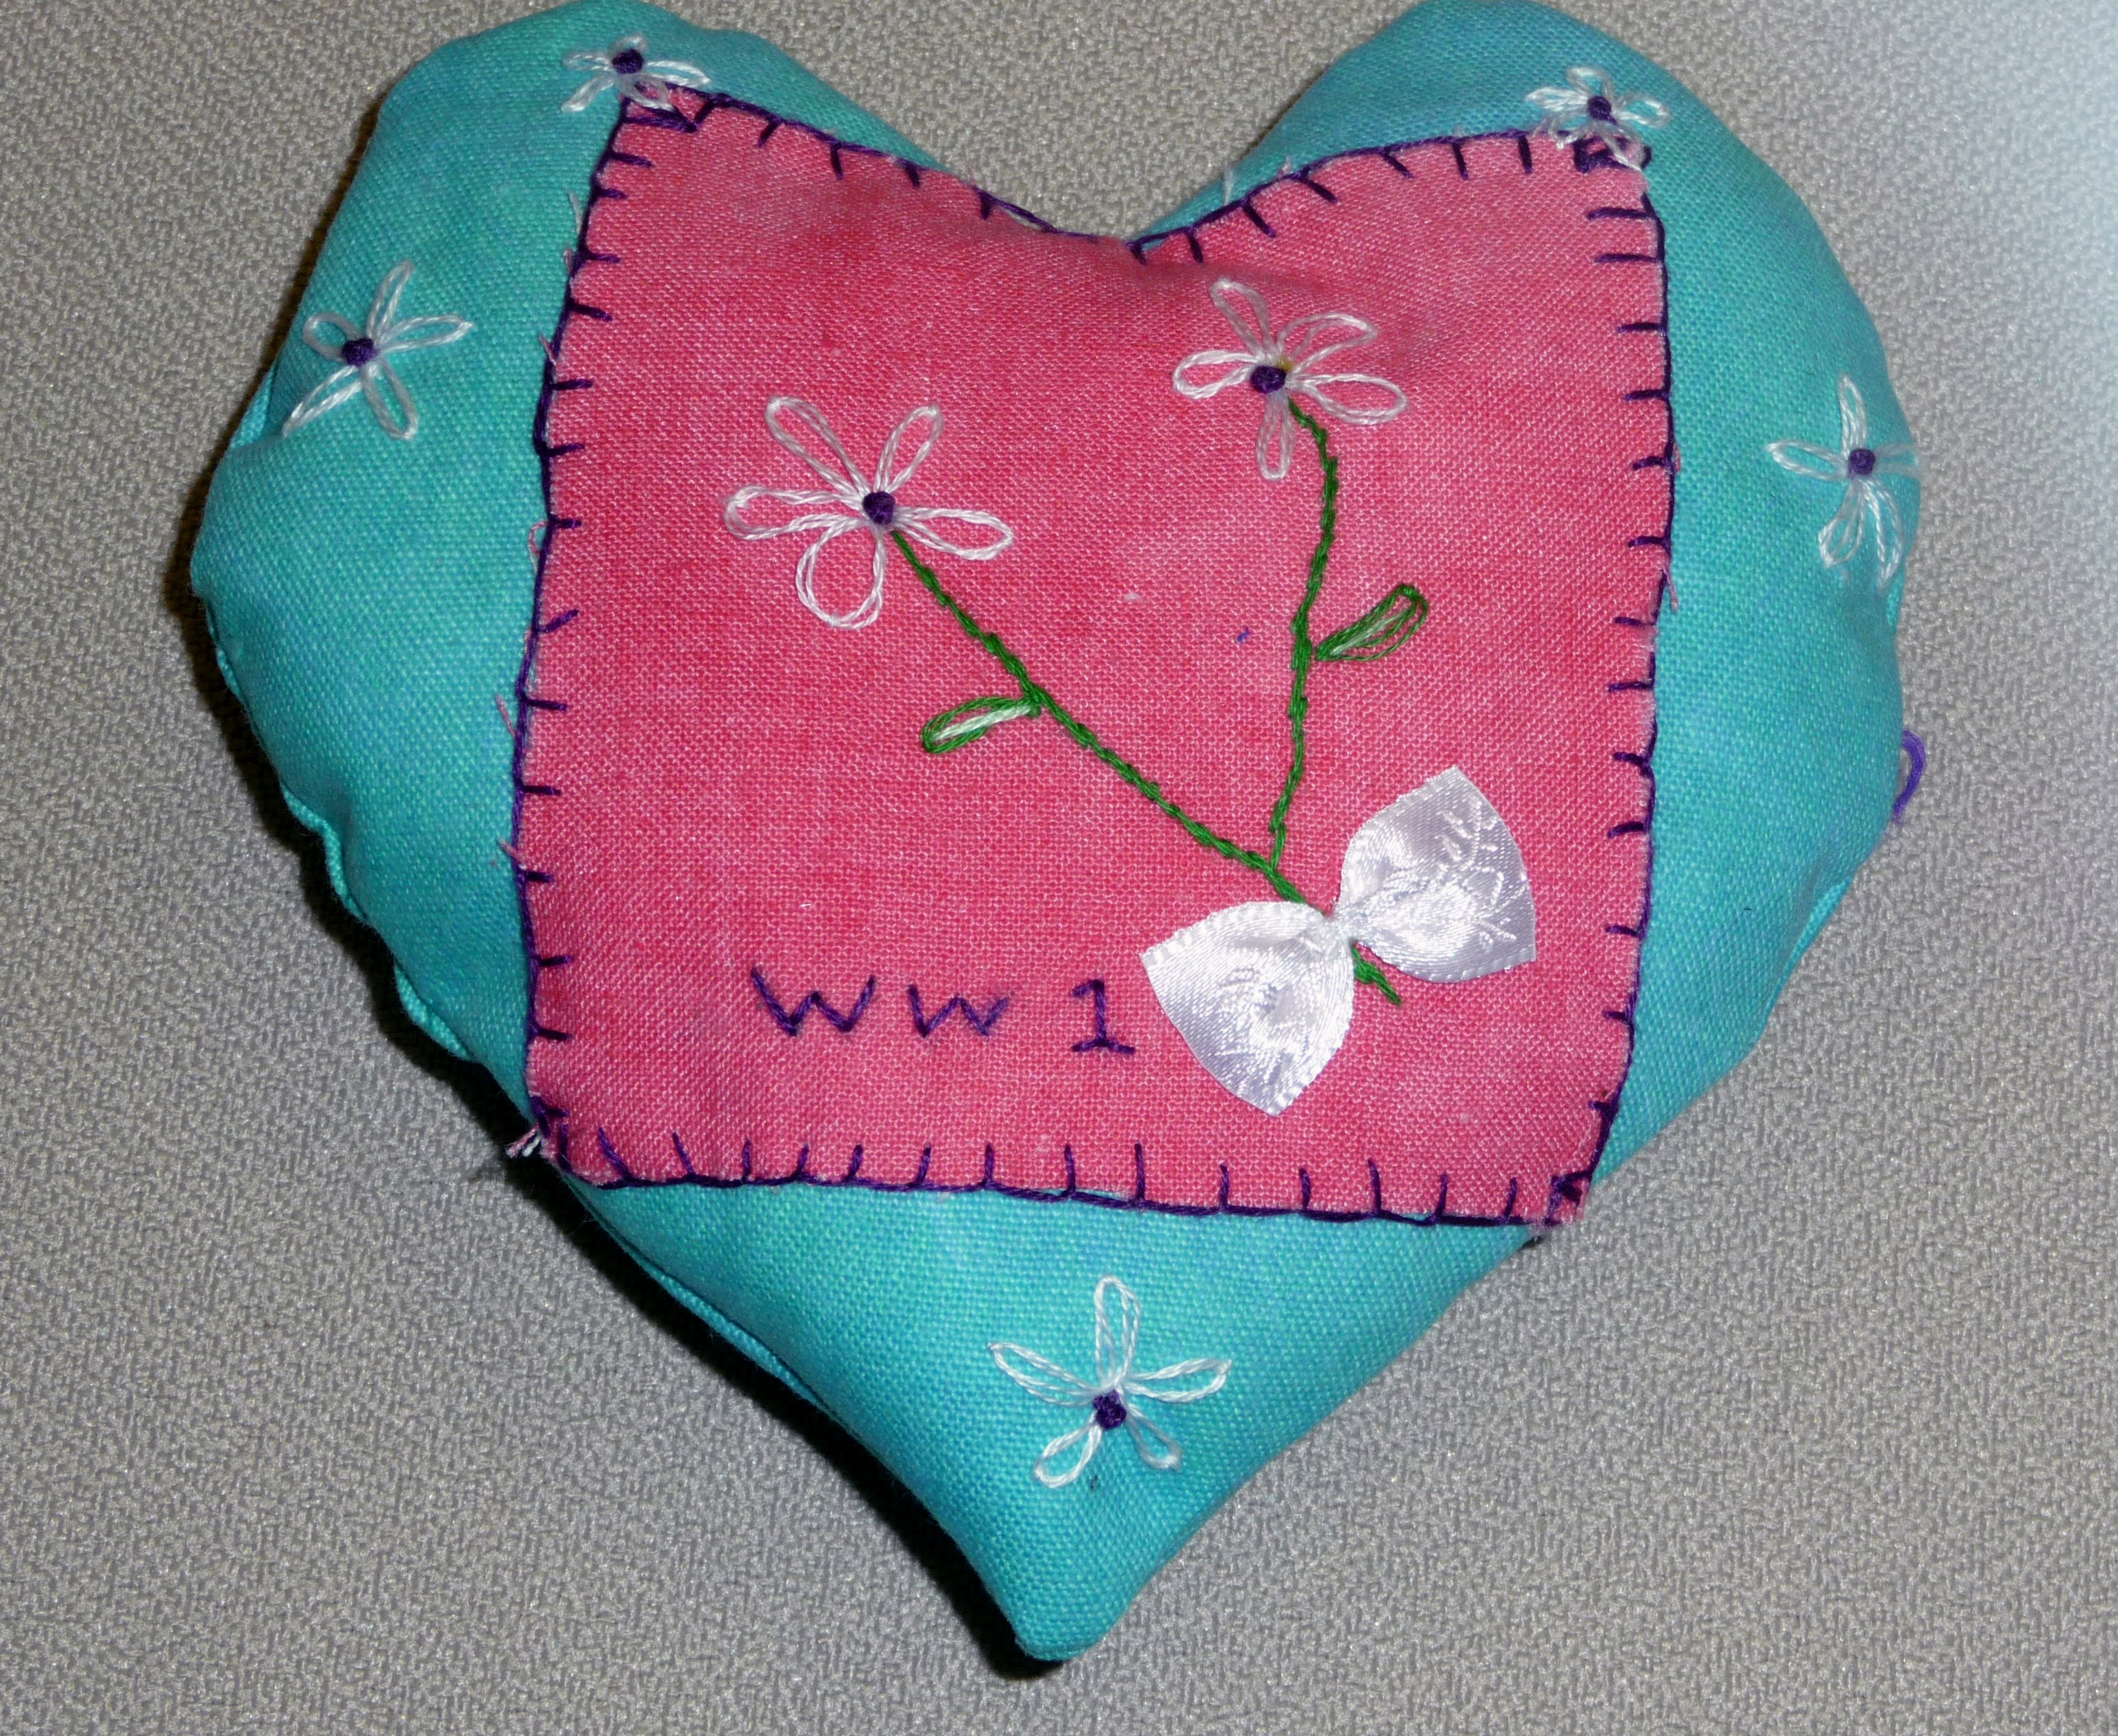 pincushion to commemorate World War 1 made by Chloe, a Merseyside Young Embroiderer